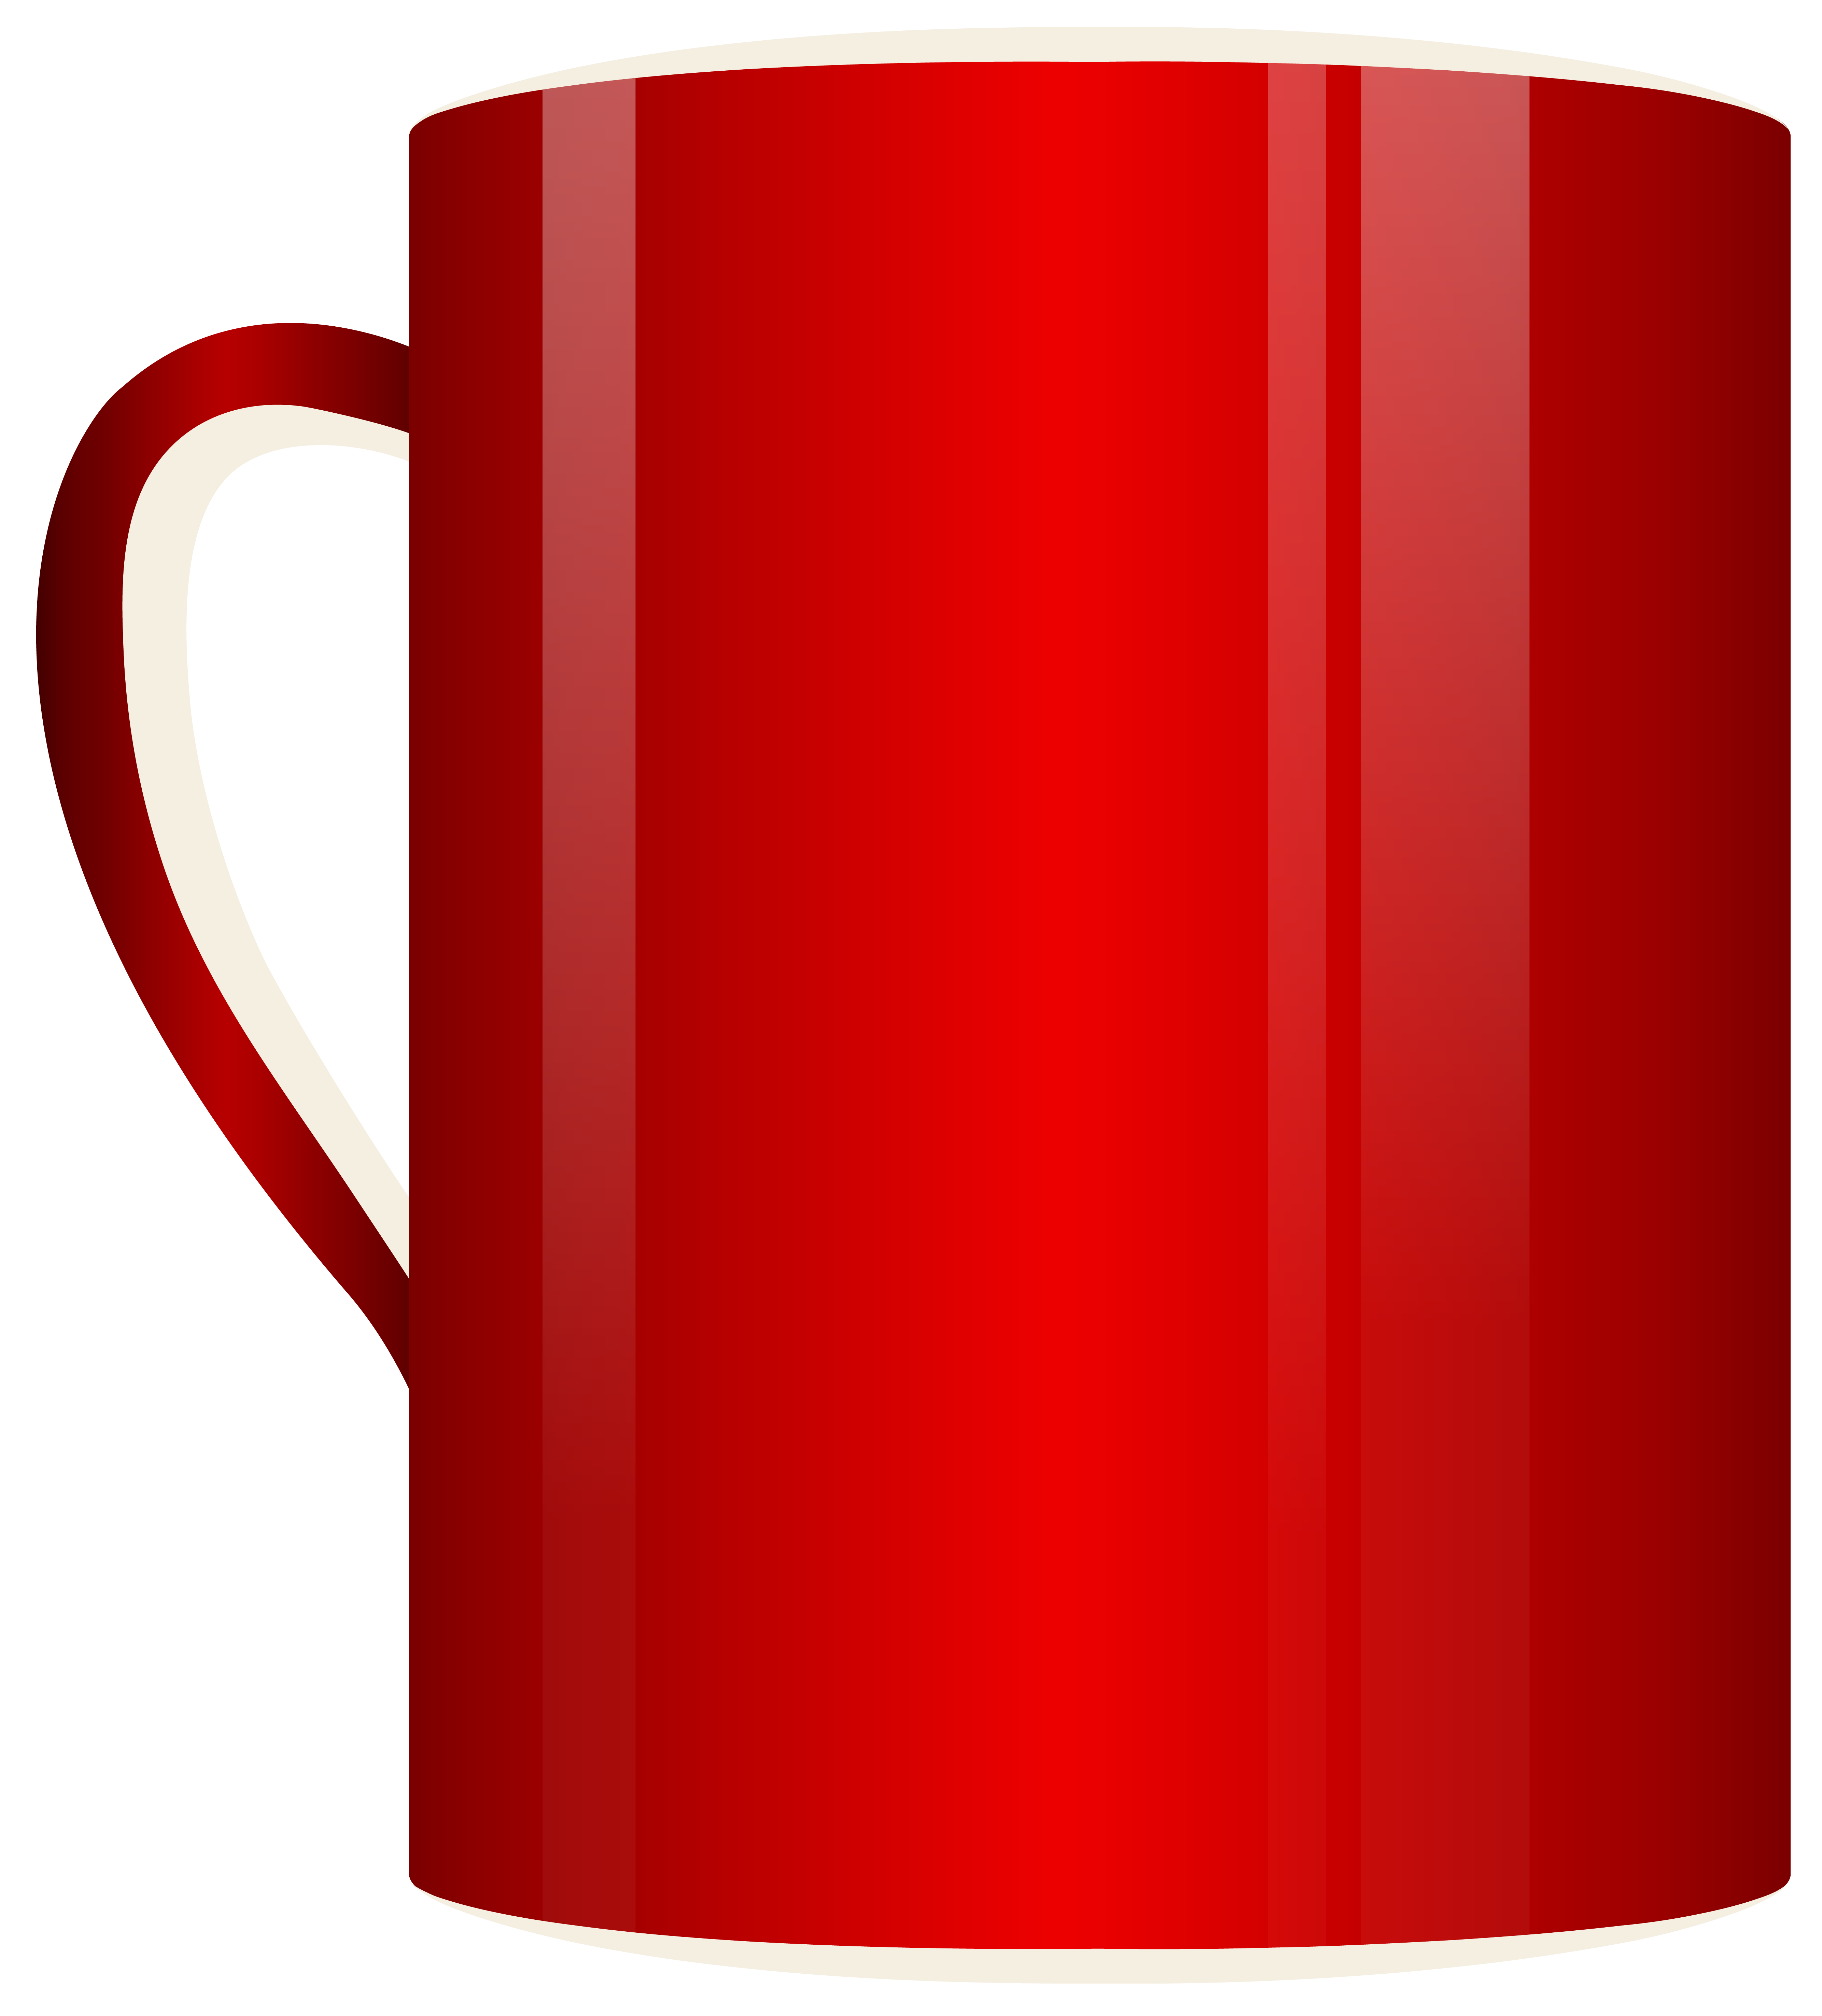 Red cup png. Clipart best web